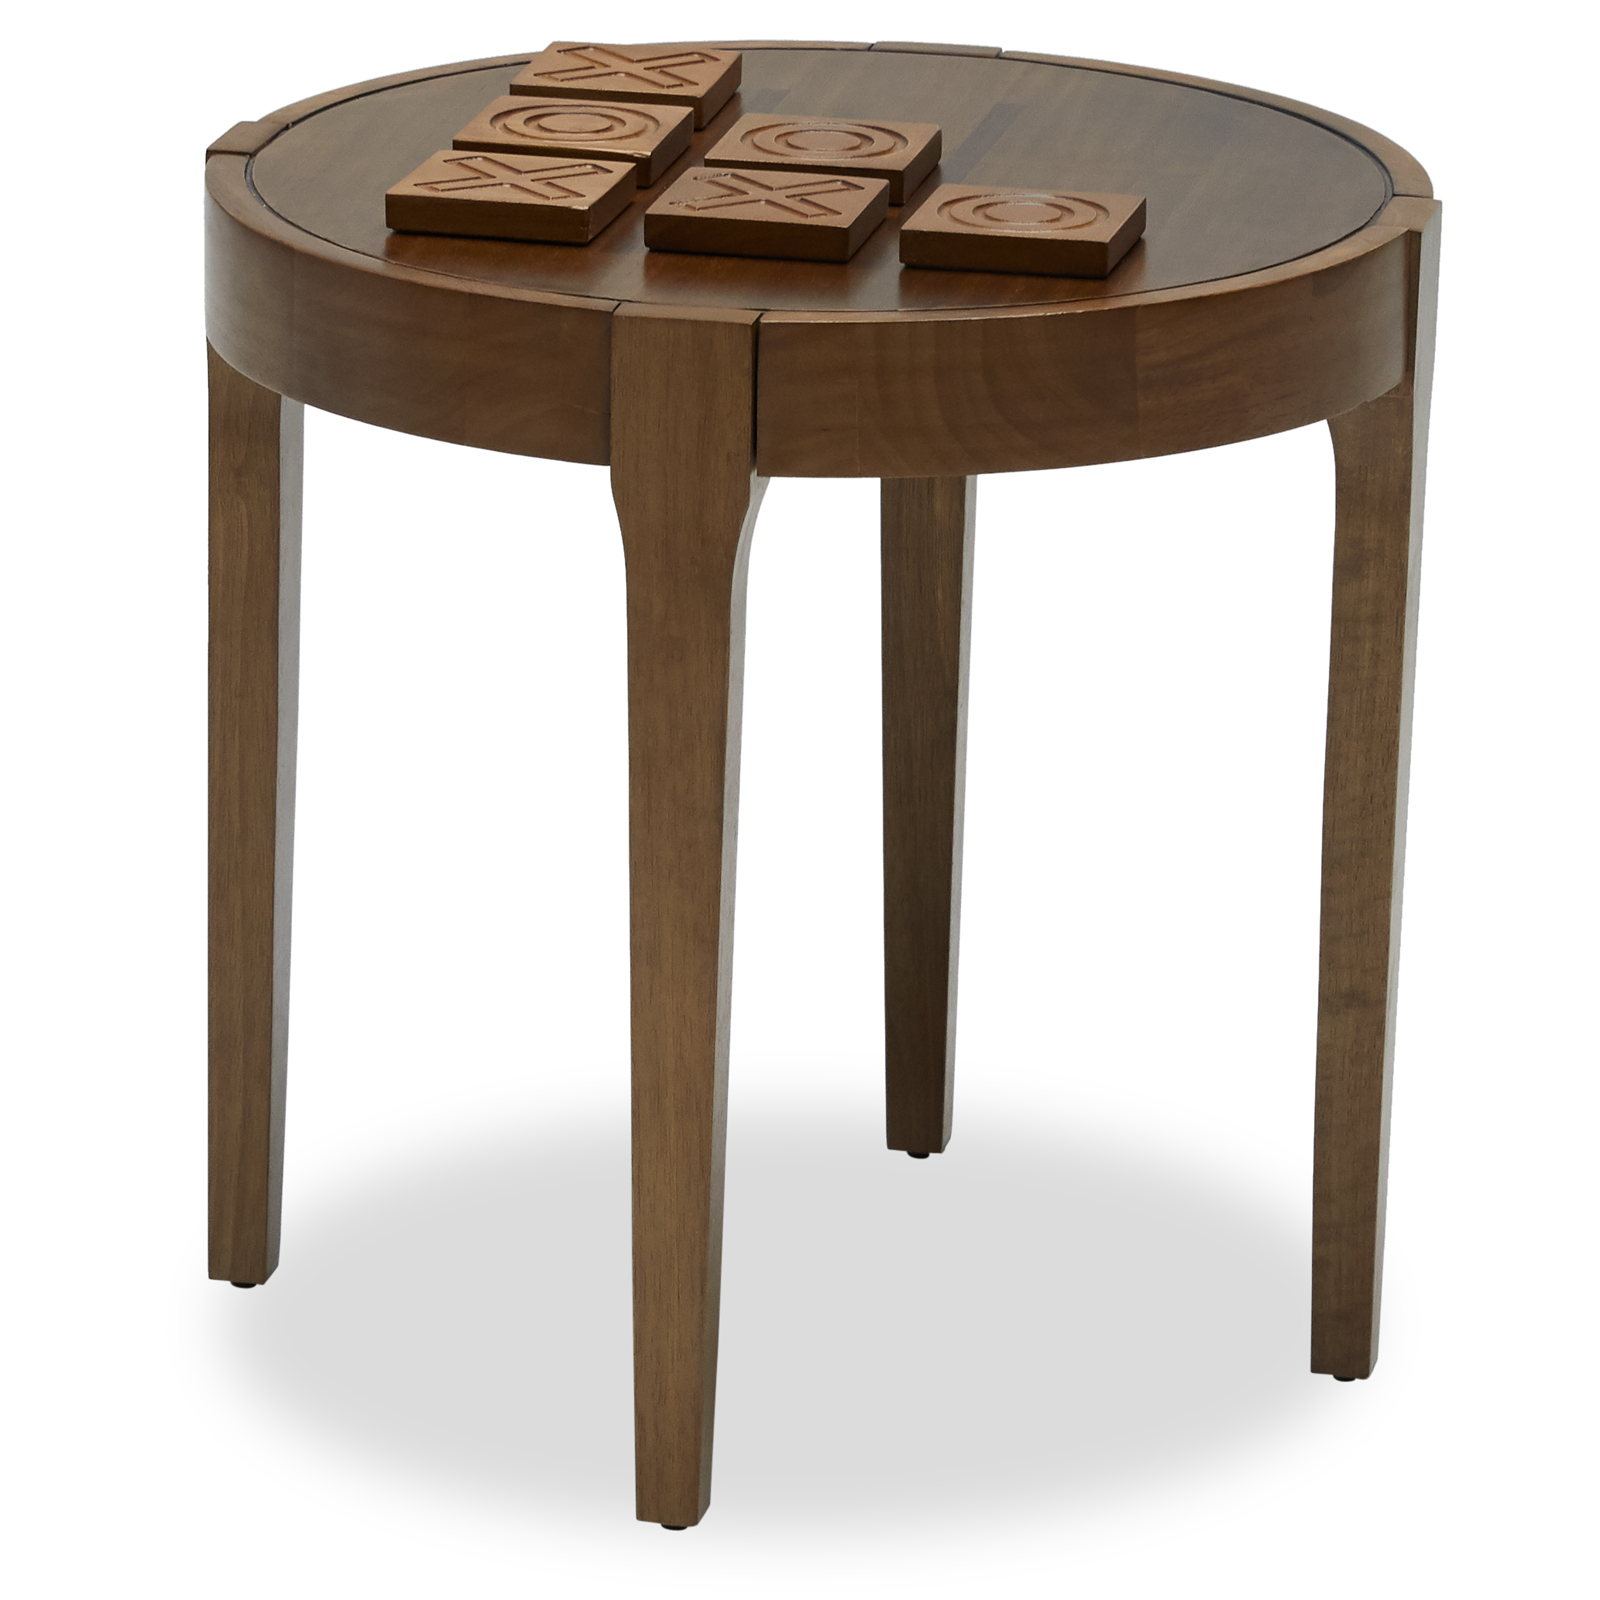 Exceptionnel Game Board Wood Side Table With Coasters By Drew Barrymore Flower Home